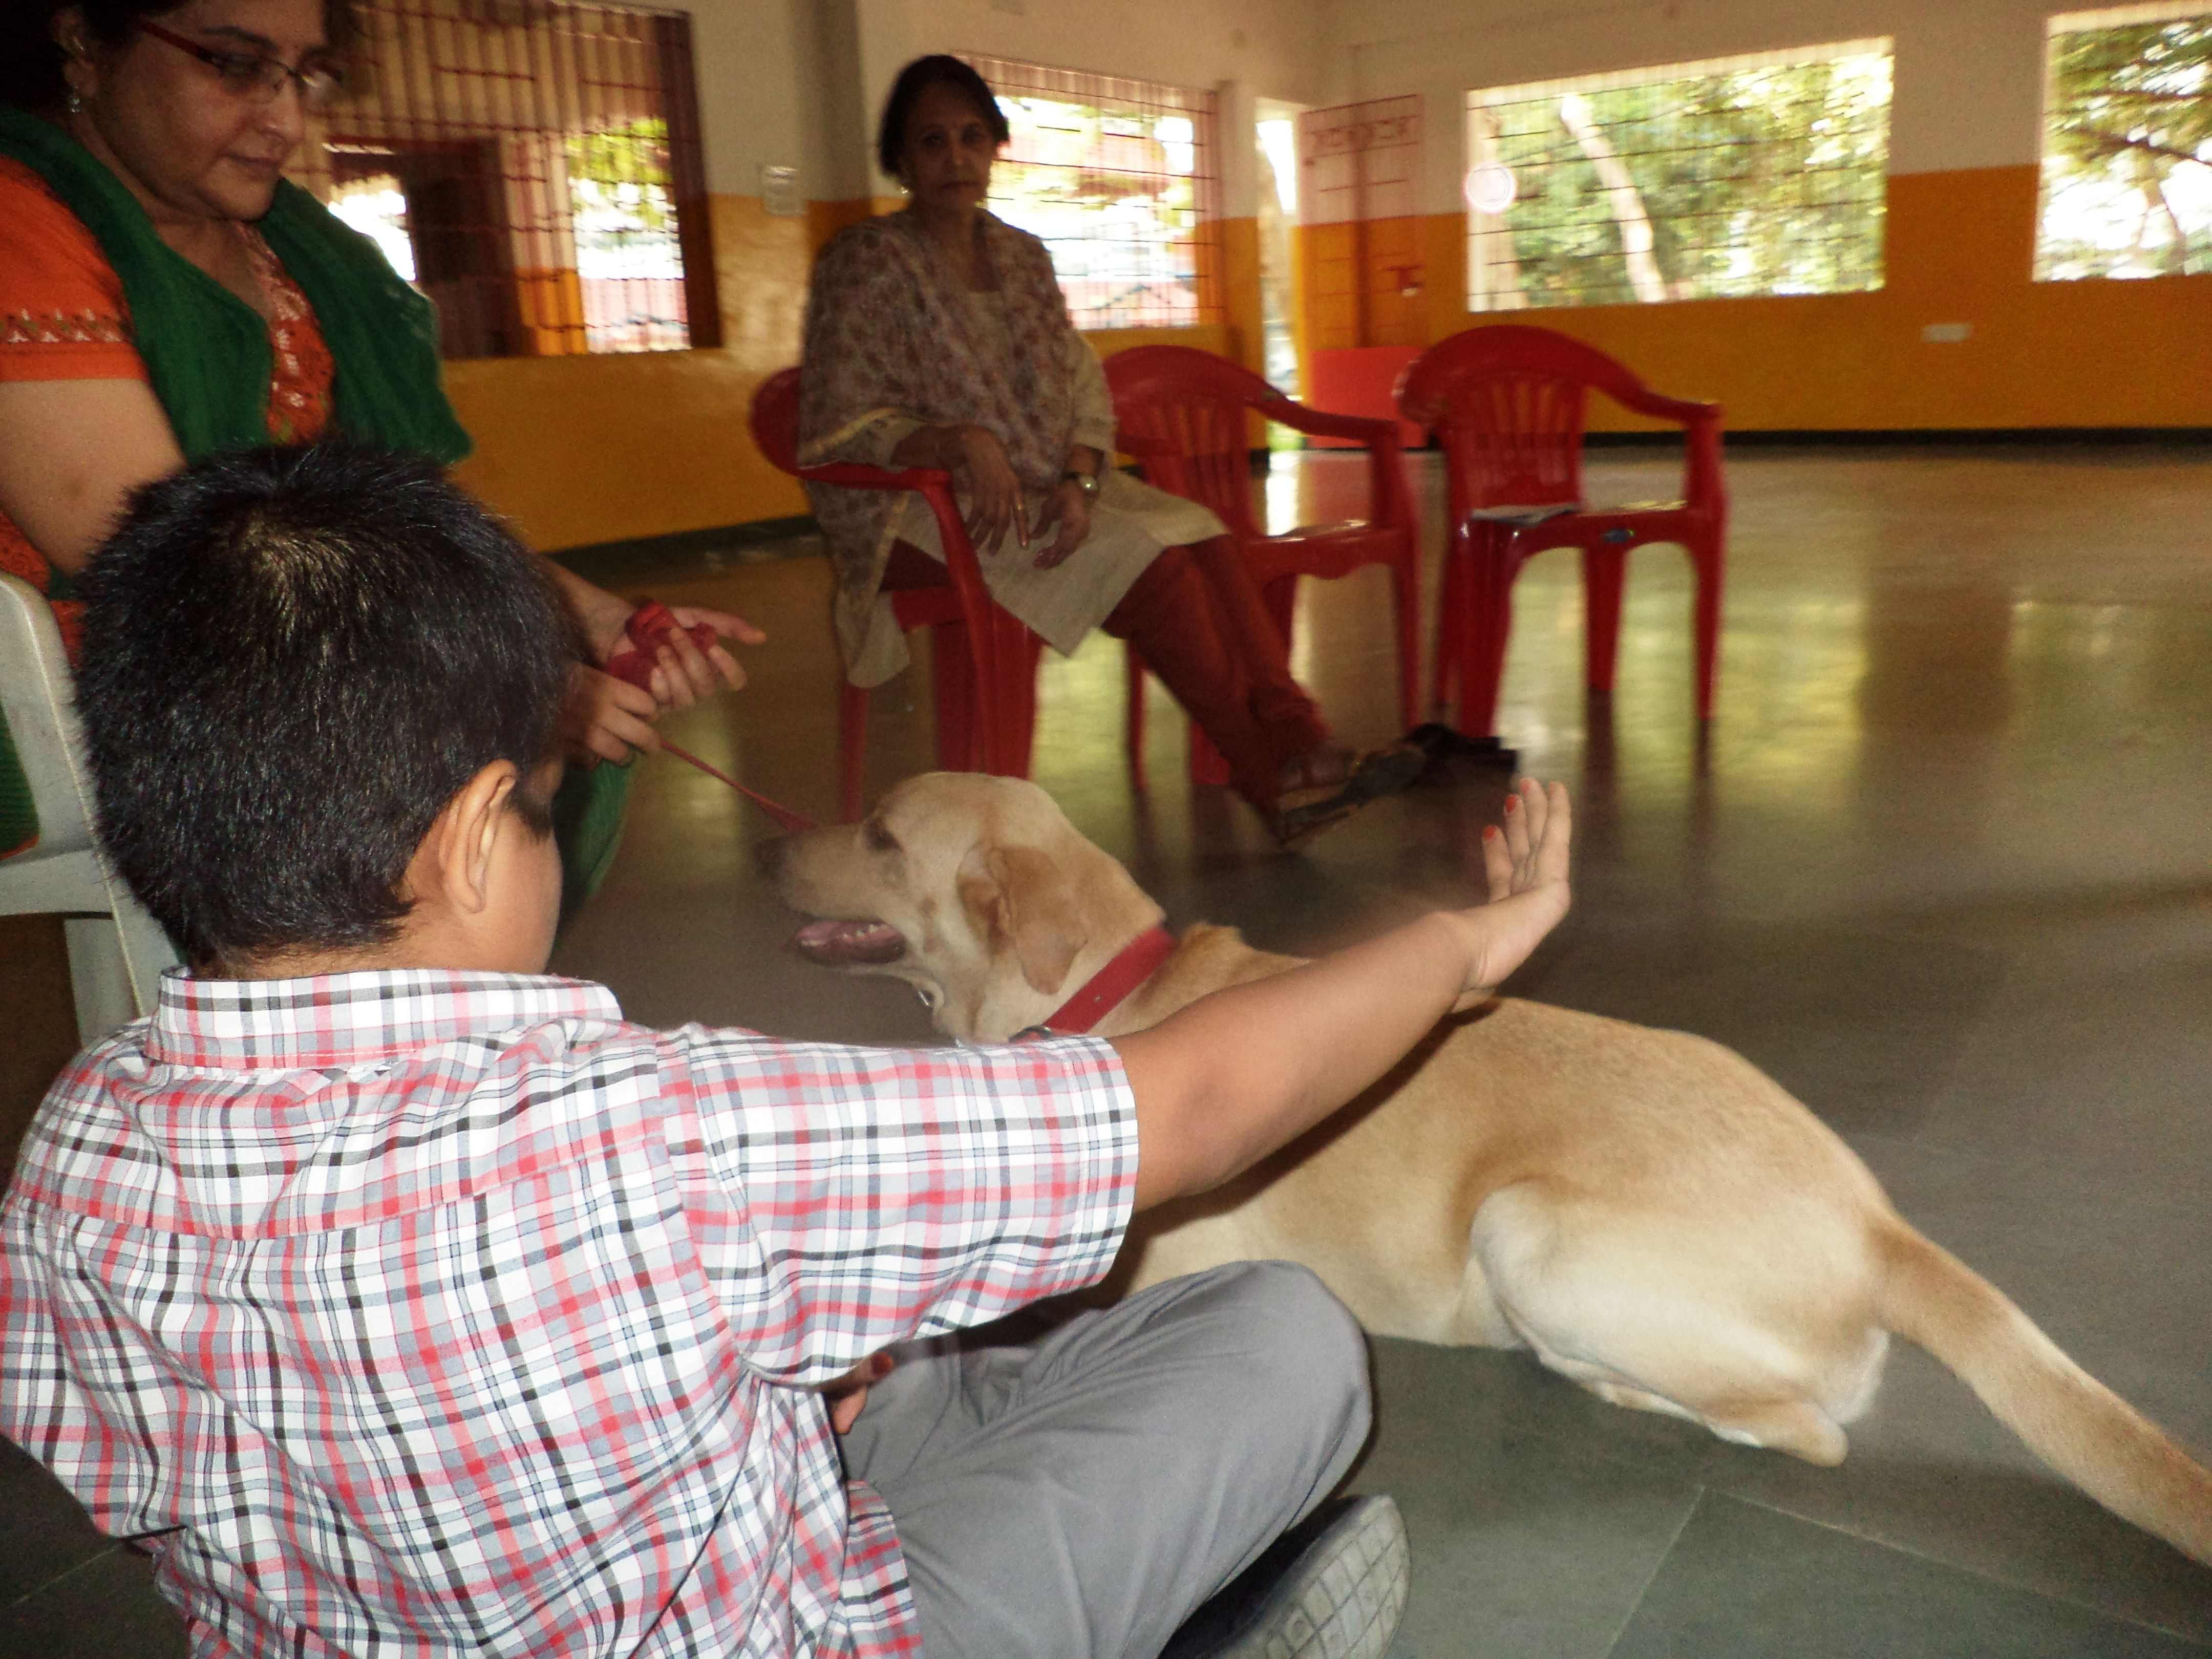 The treatment of Dr Ruffles, an affectionate dog and resident 'doctor' at a hospital in Chennai, has helped several children with special needs to overcome their learning disabilities and resolve complex behavioural issues.